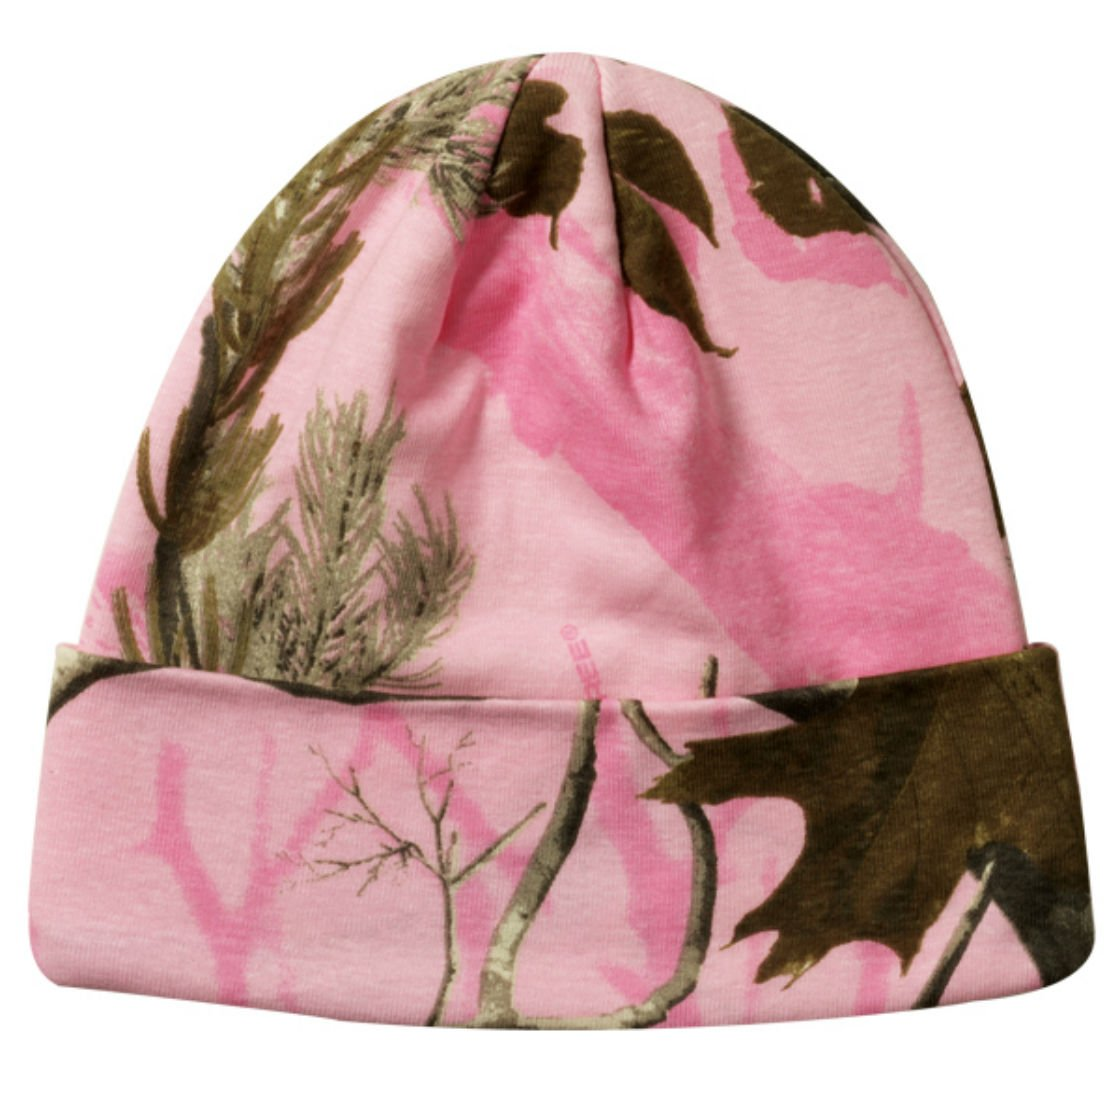 Realtree Licensed Camo Knit Cuff Beanie Pink by Realtree (Image #2)